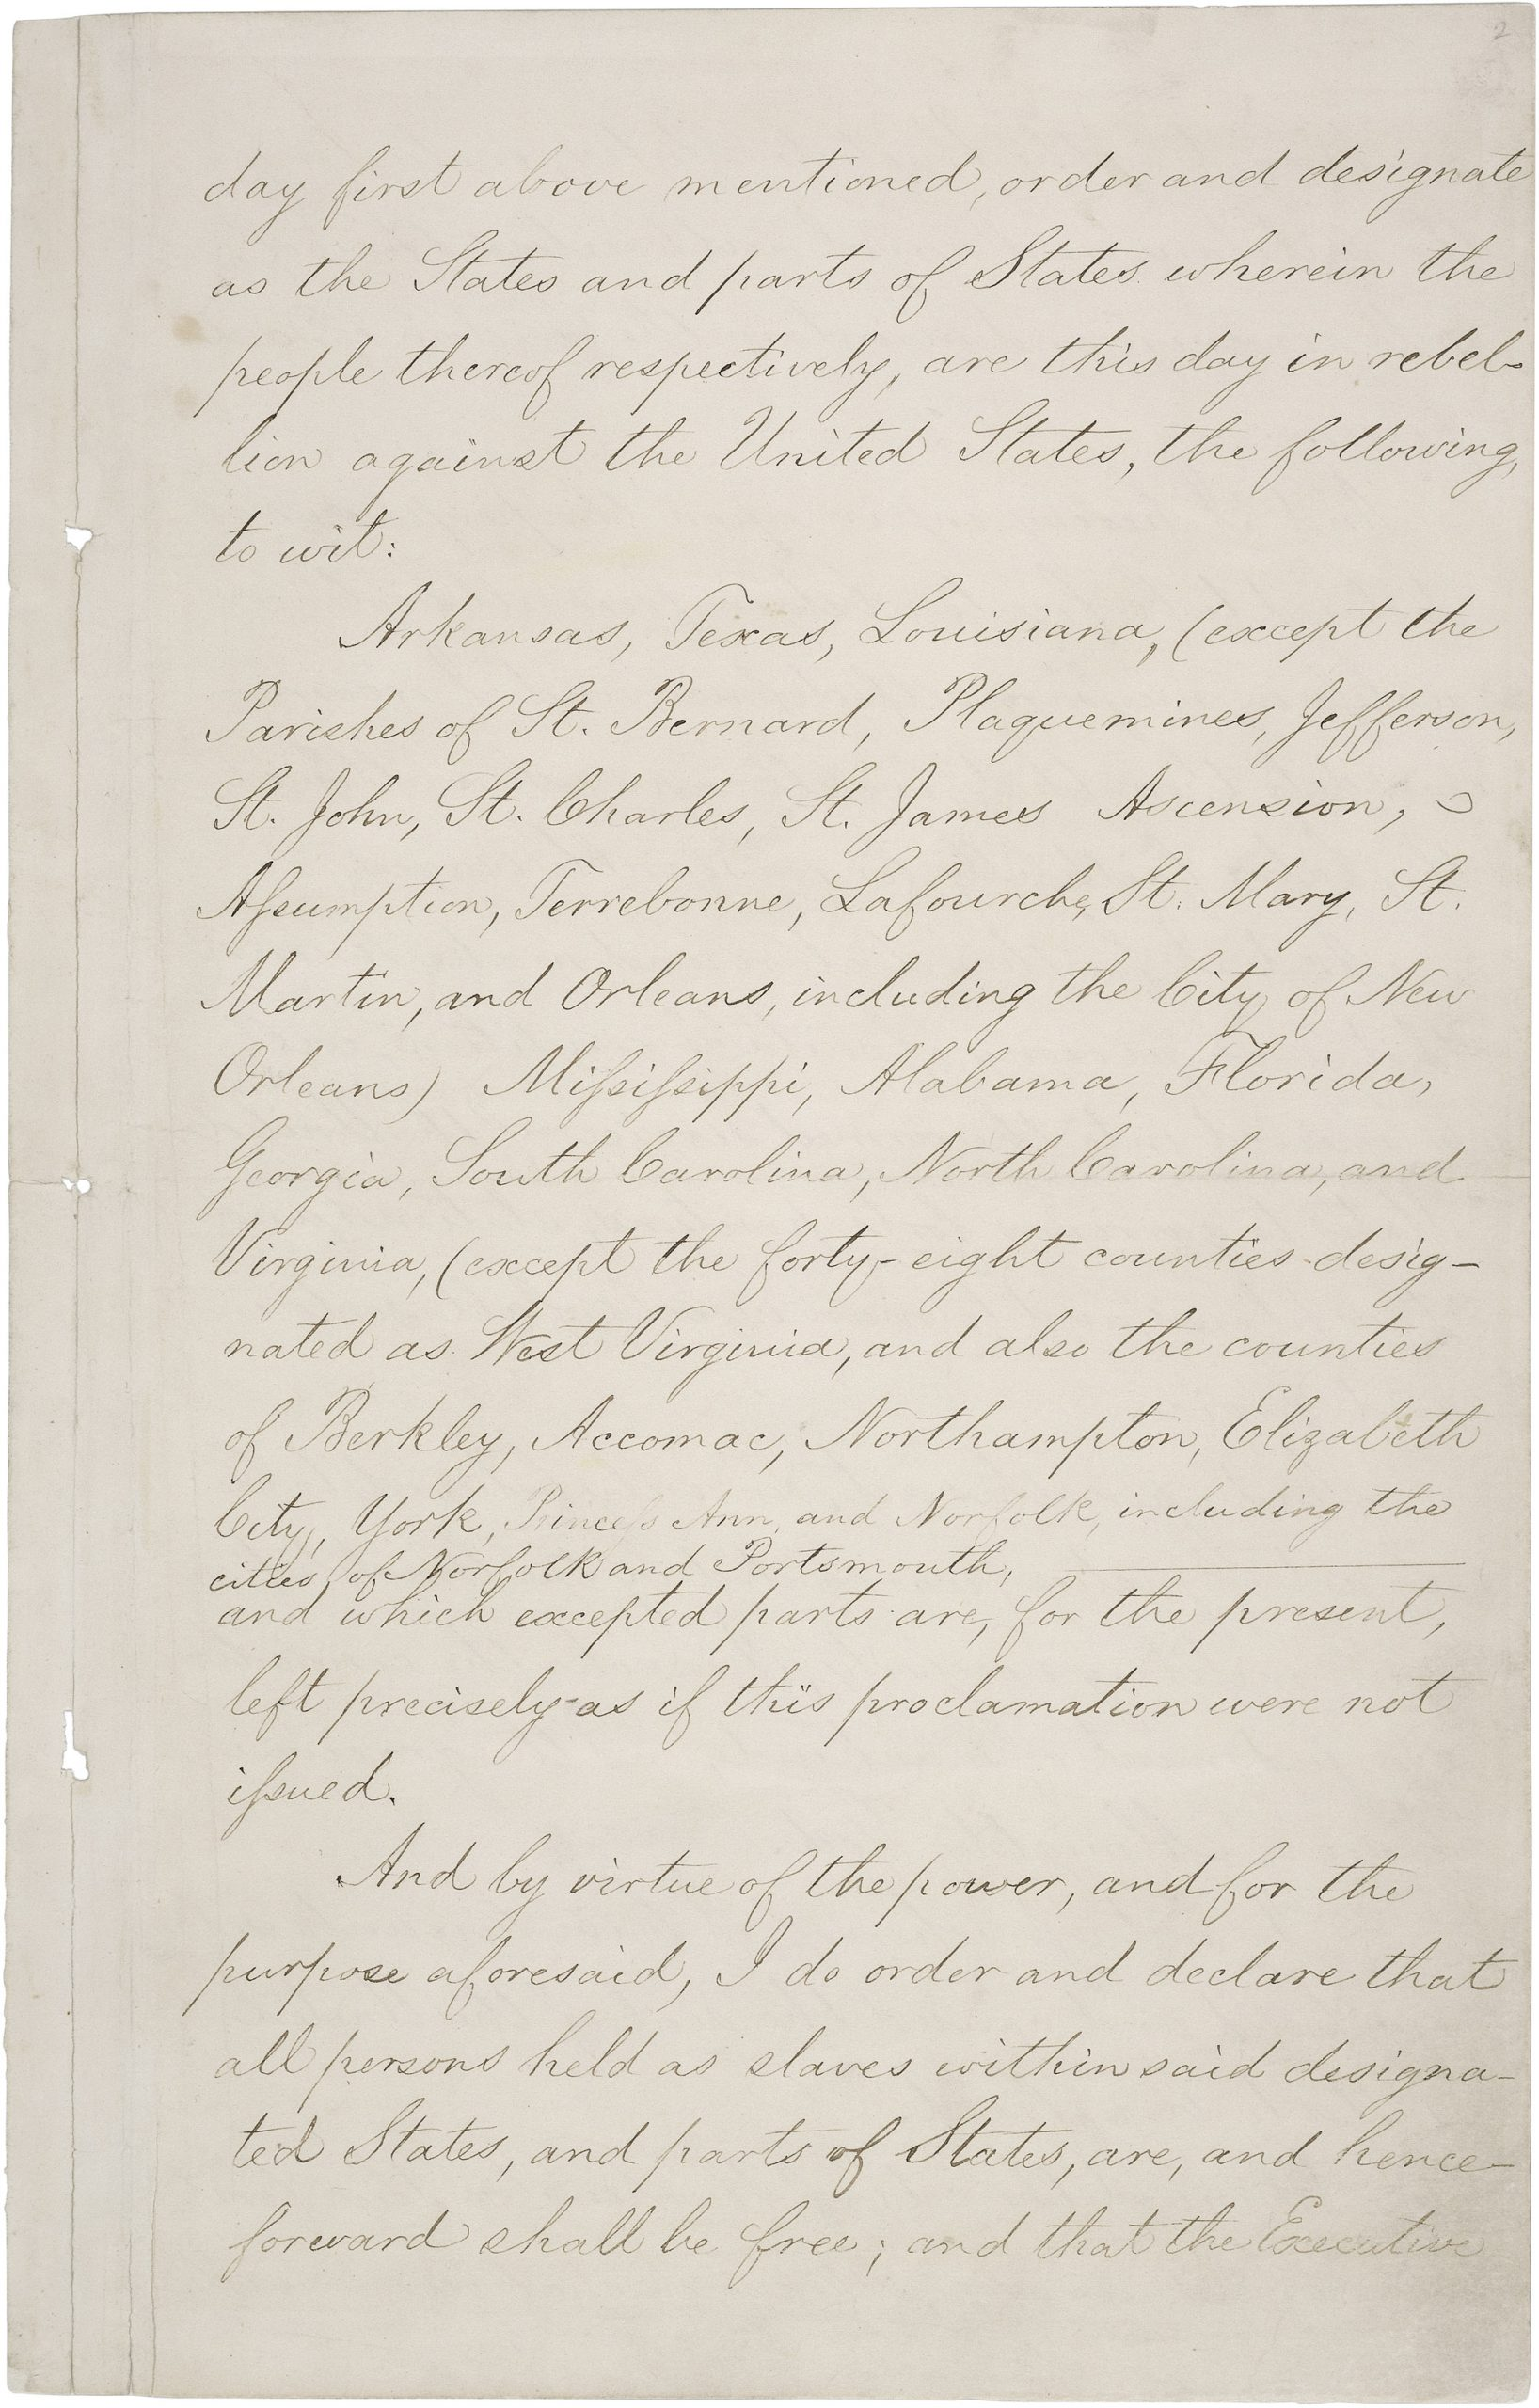 Image of third page of Emancipation Proclamation.